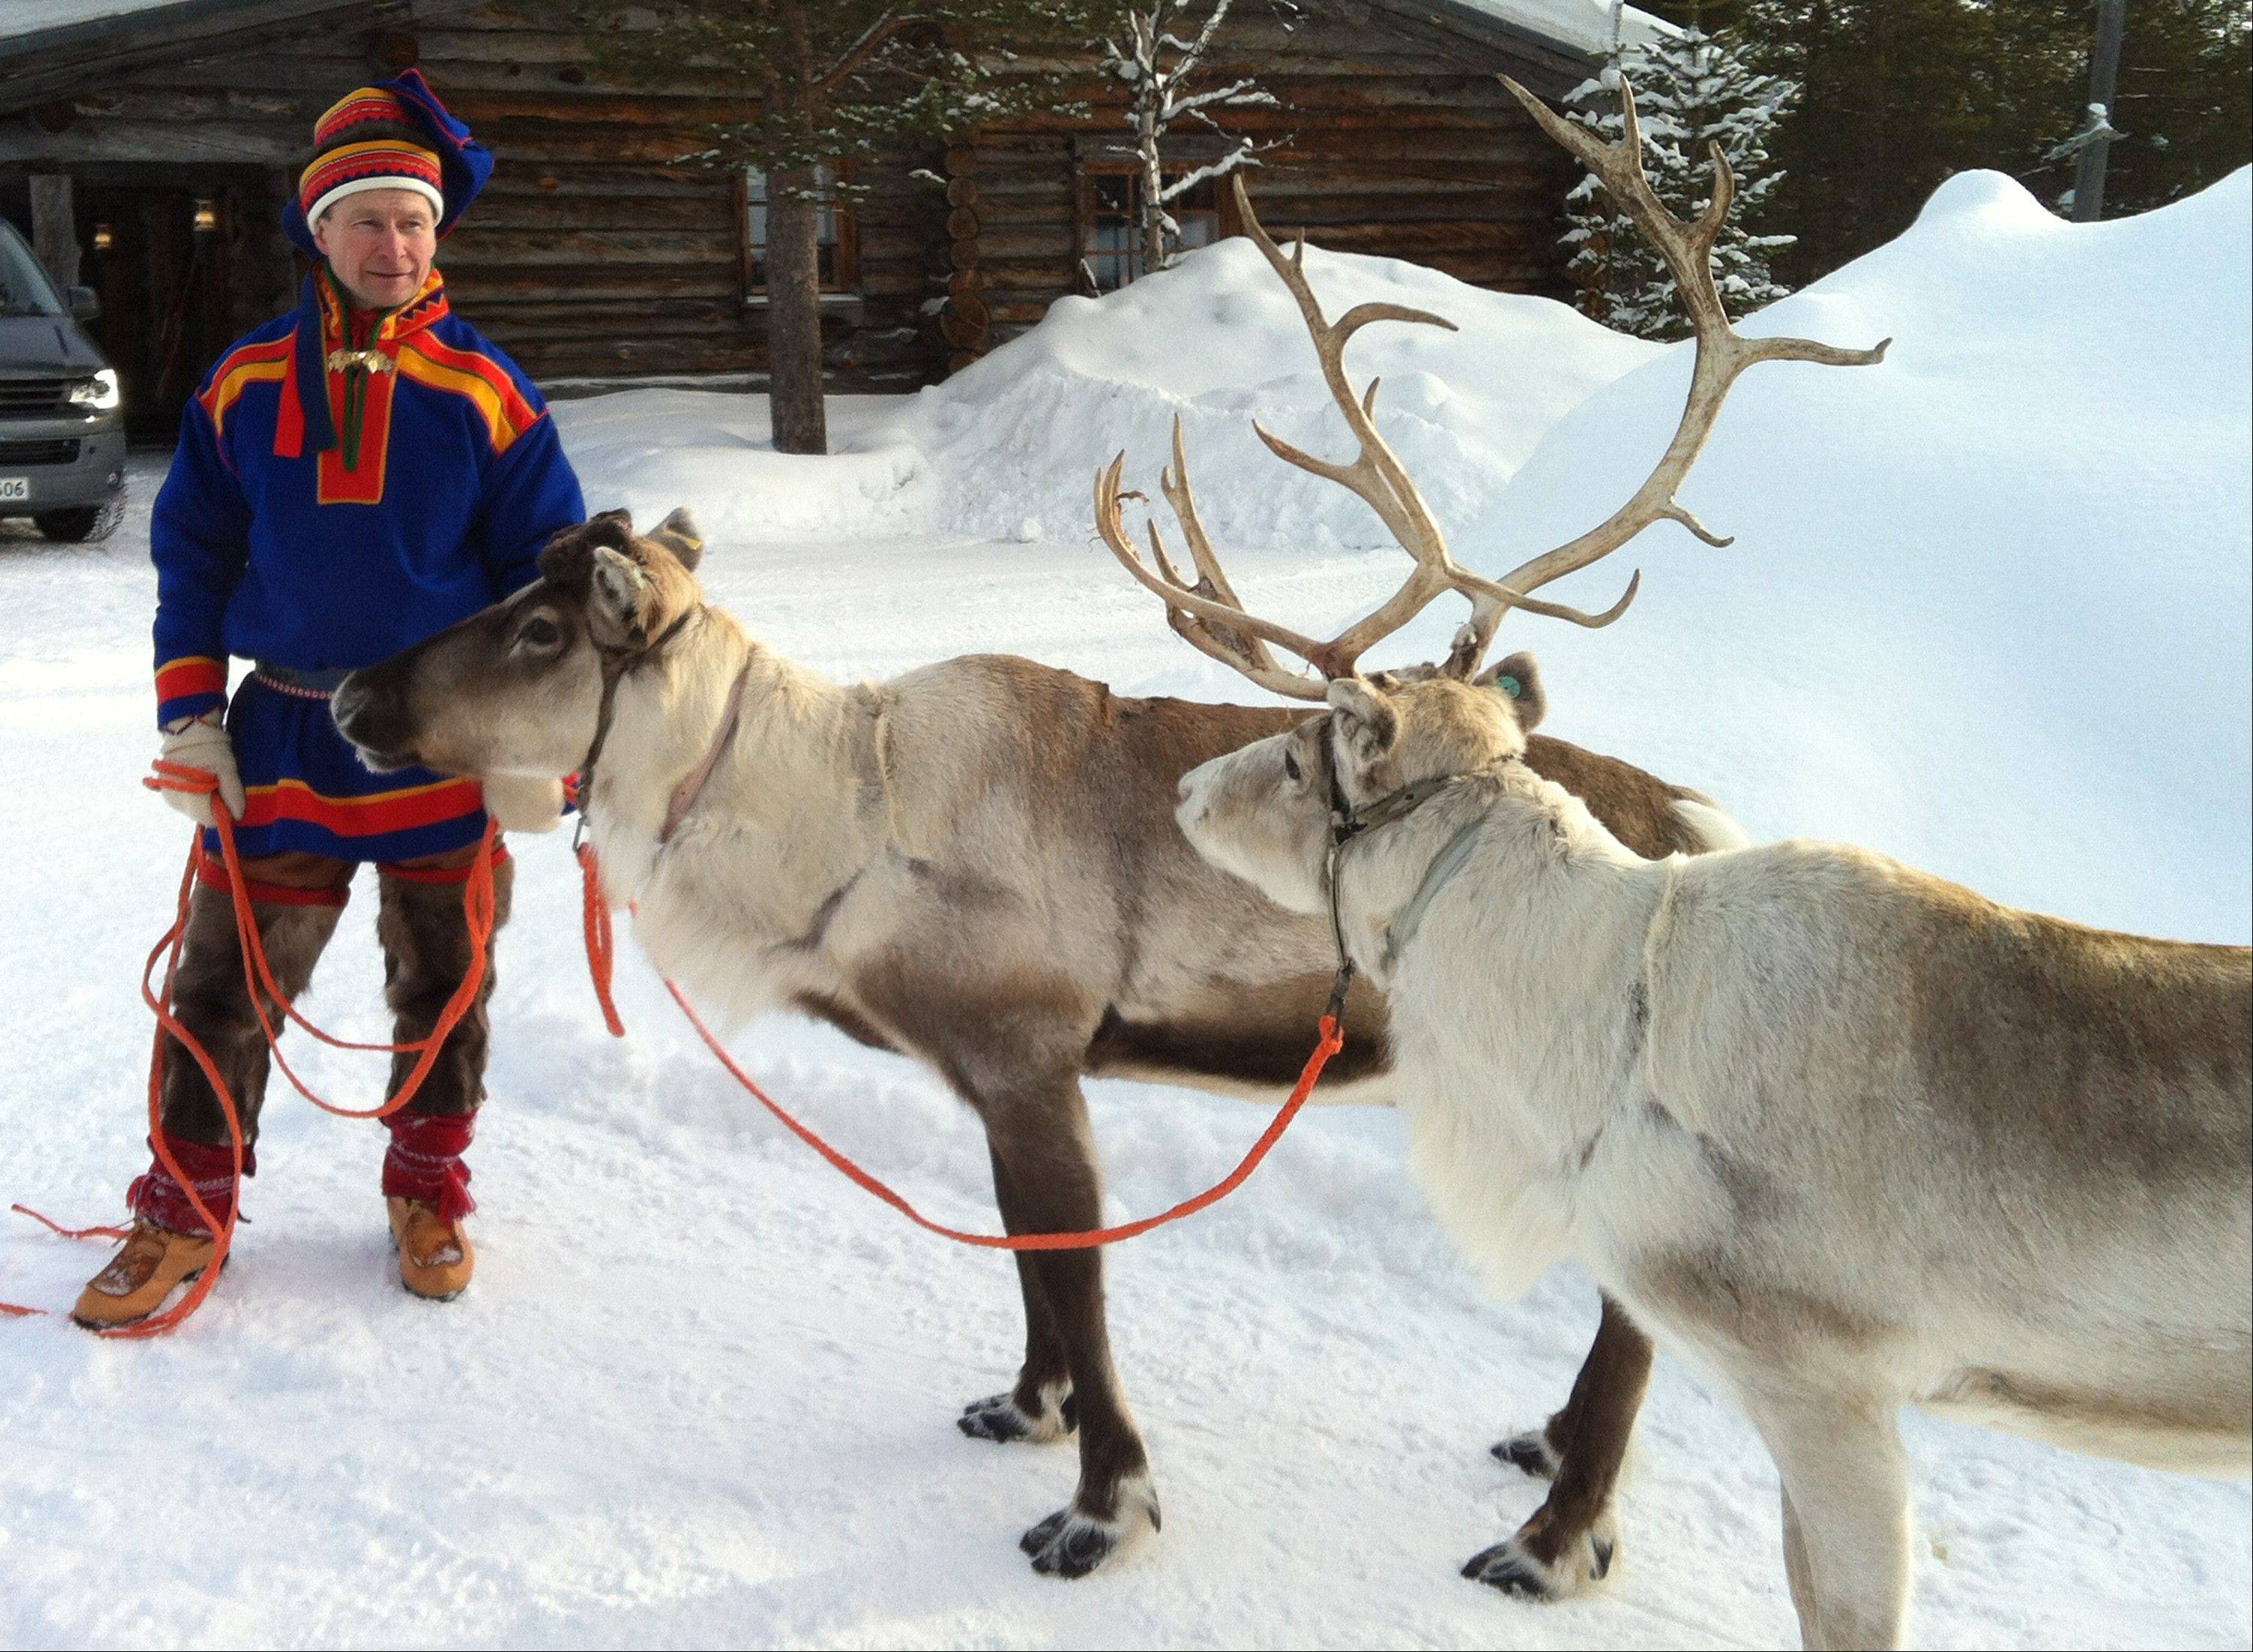 A Sami handler in traditional clothing holds two of his herd in Saariselka, Finnish Lapland.